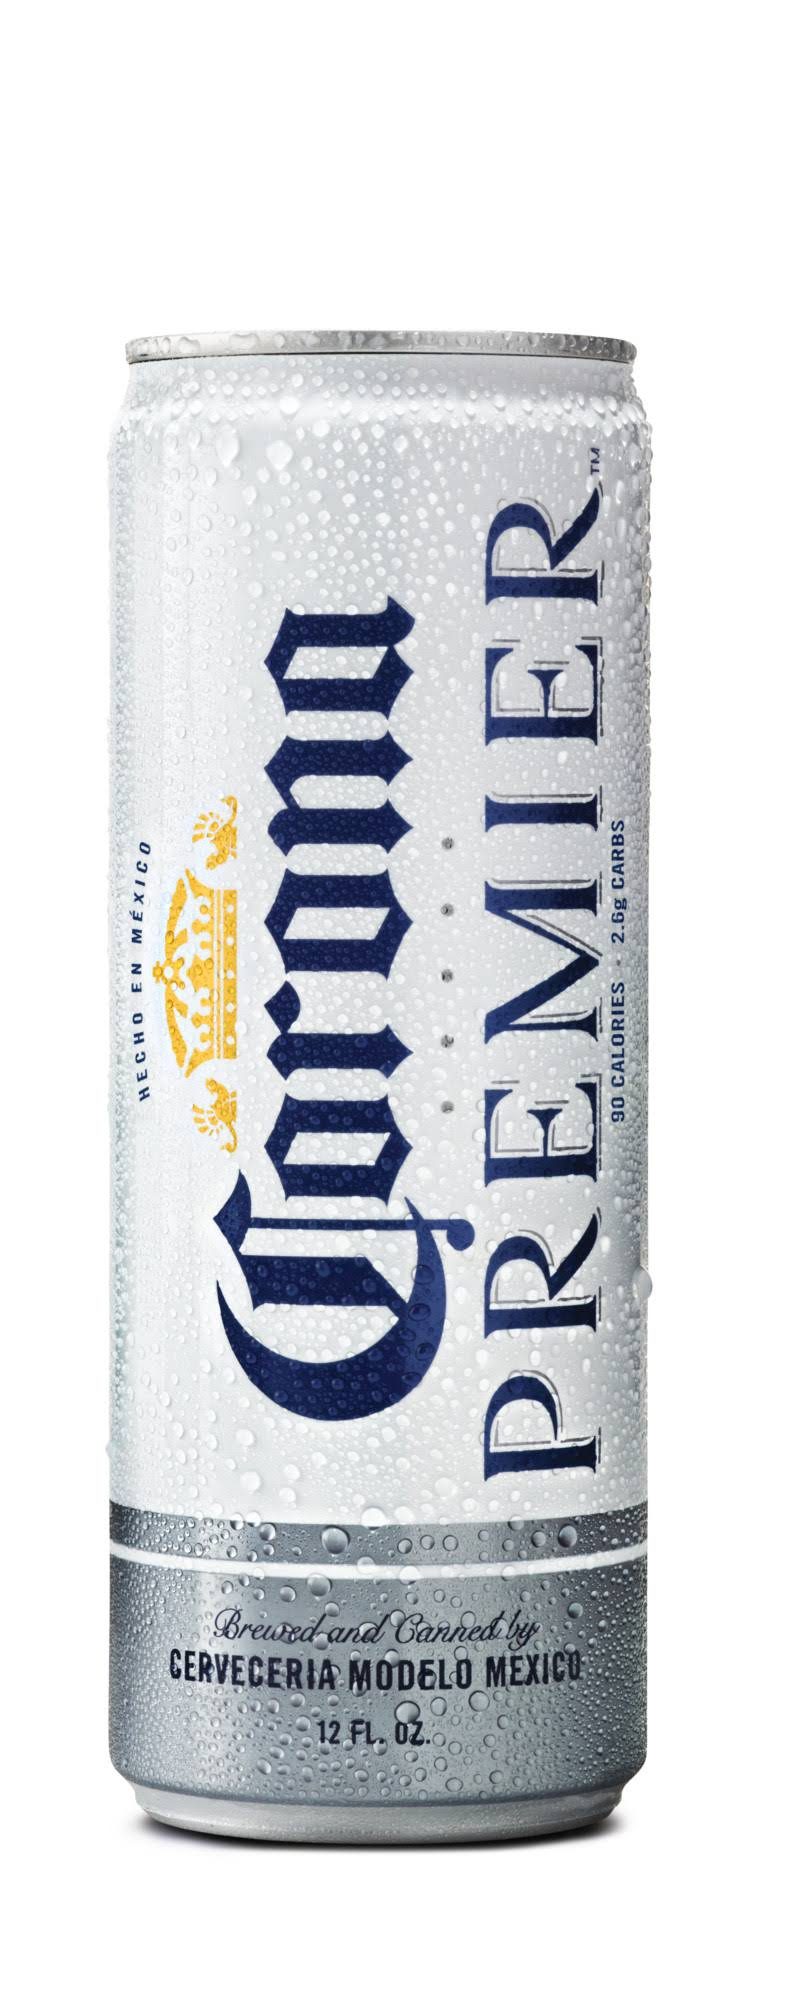 Corona Premier Mexican Import Beer, 12 fl oz Can, 4.0% Abv